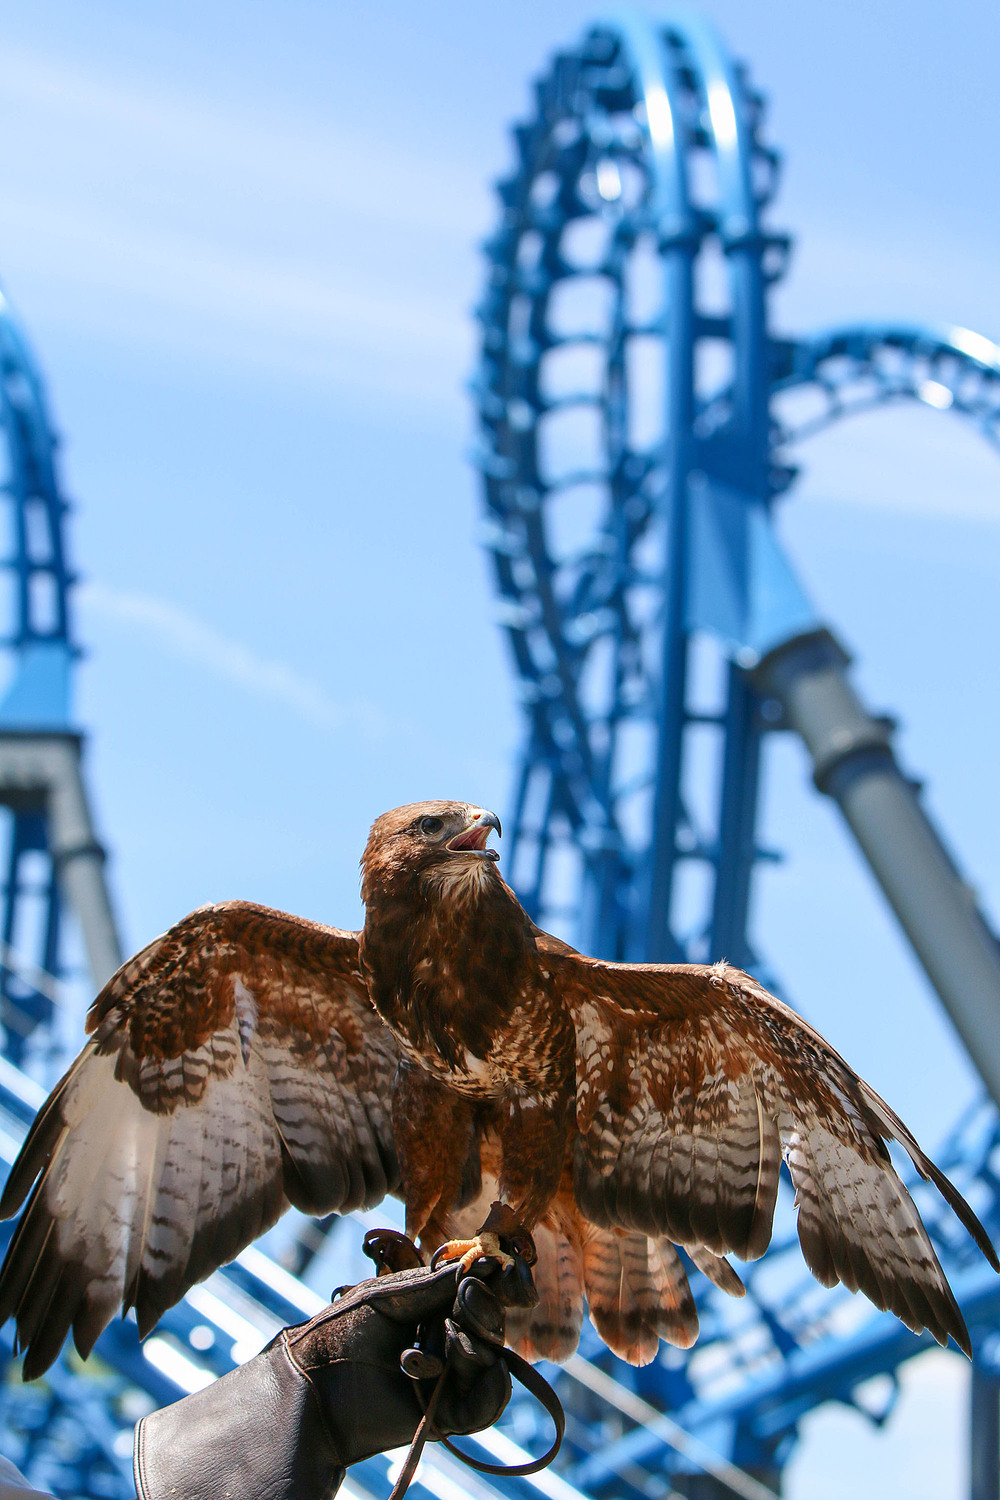 E.B., a female European buzzard or hawk, spreads her wings at the grand reopening of the Blue Hawk roller coaster on Thursday at Six Flags Over Georgia. The Air Force themed roller coaster honors the military. Staff - Emily Selby